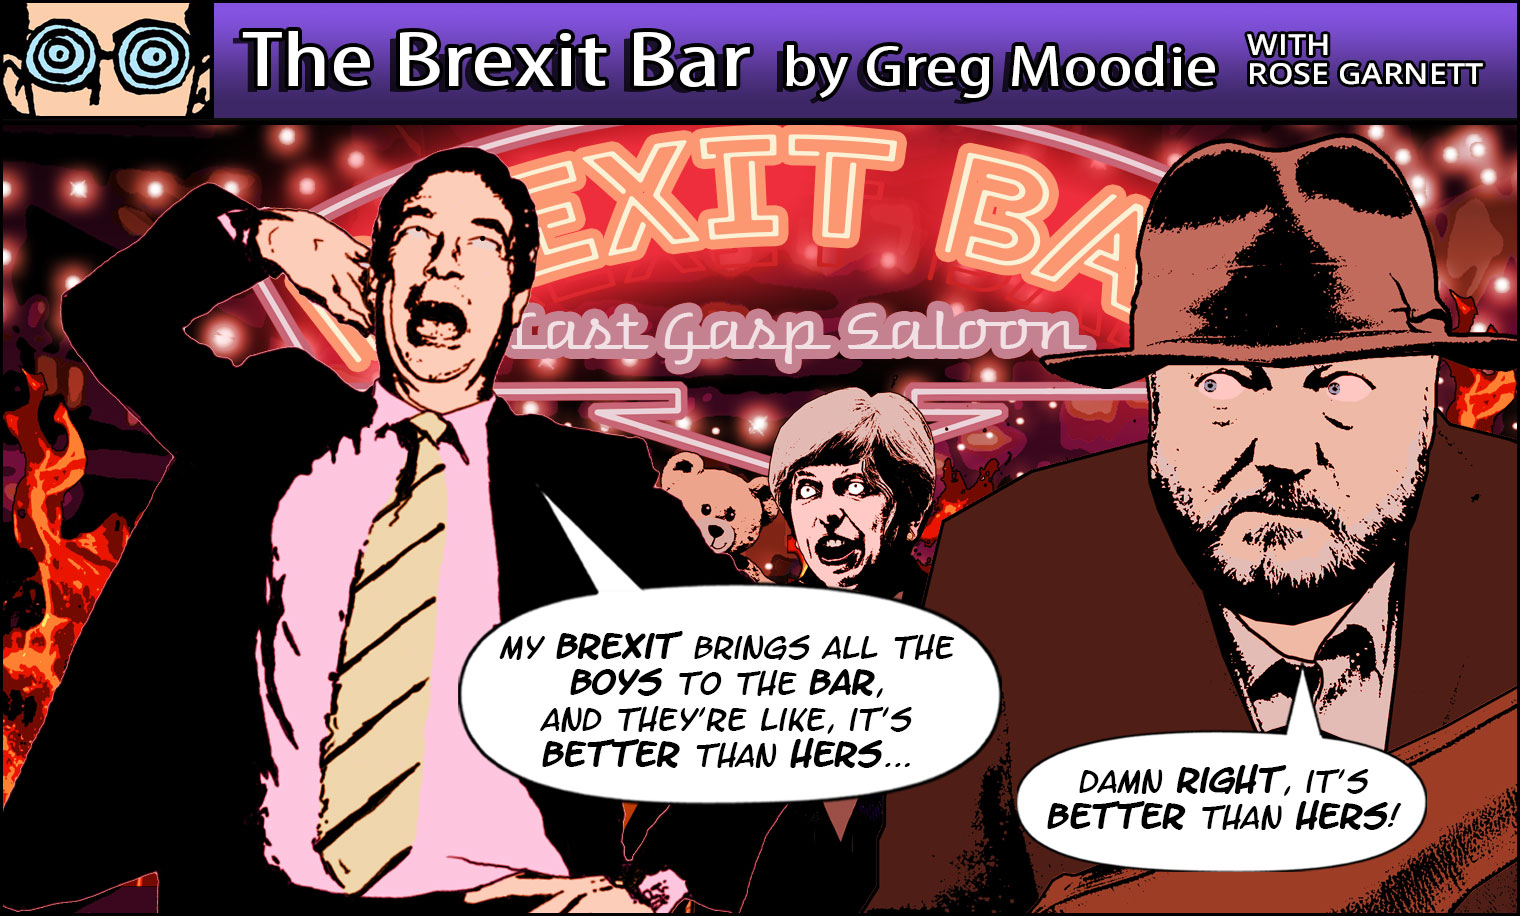 The Brexit Bar